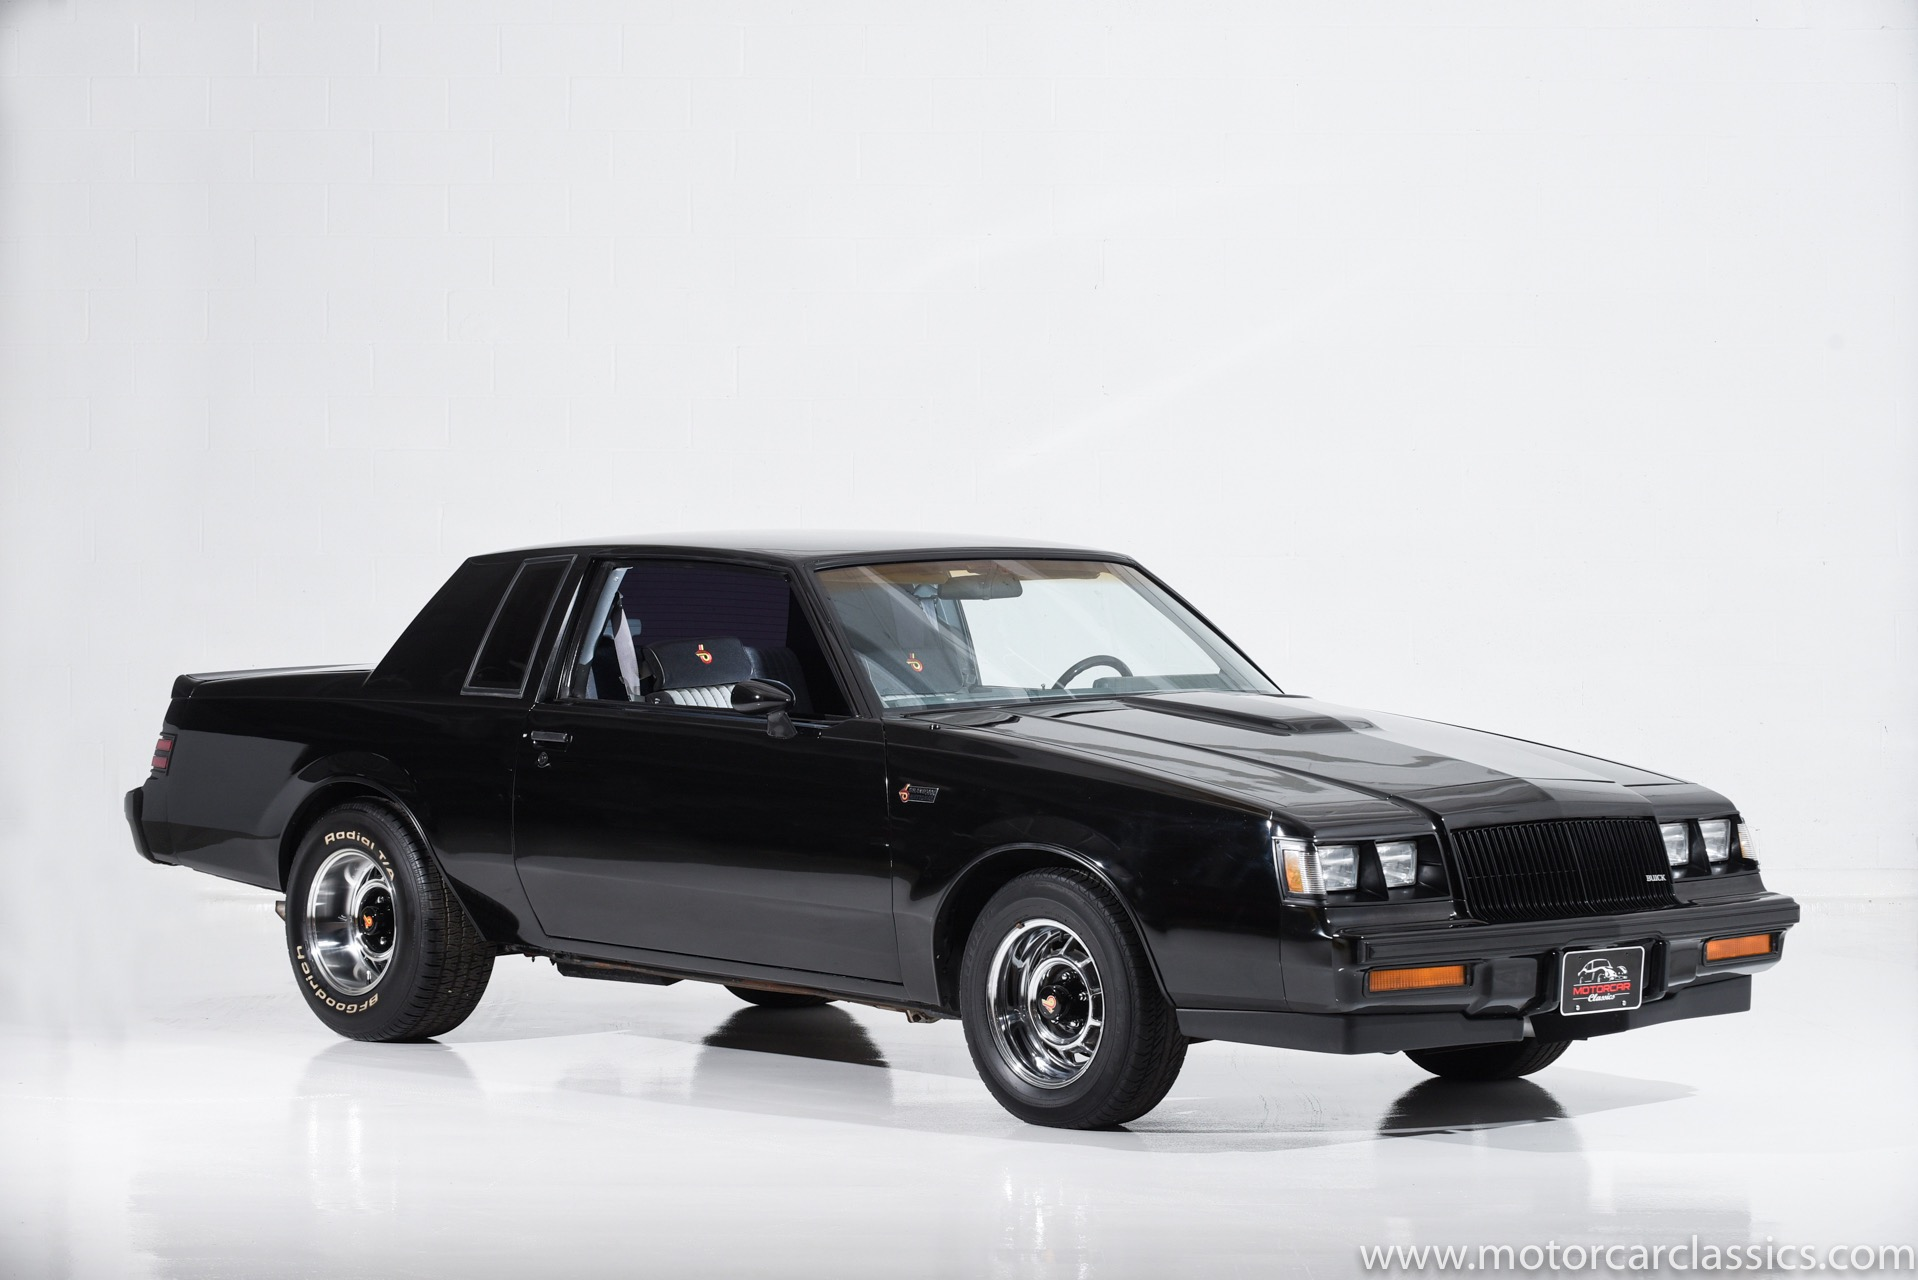 Photo 1987 Buick Regal Grand National Turbo